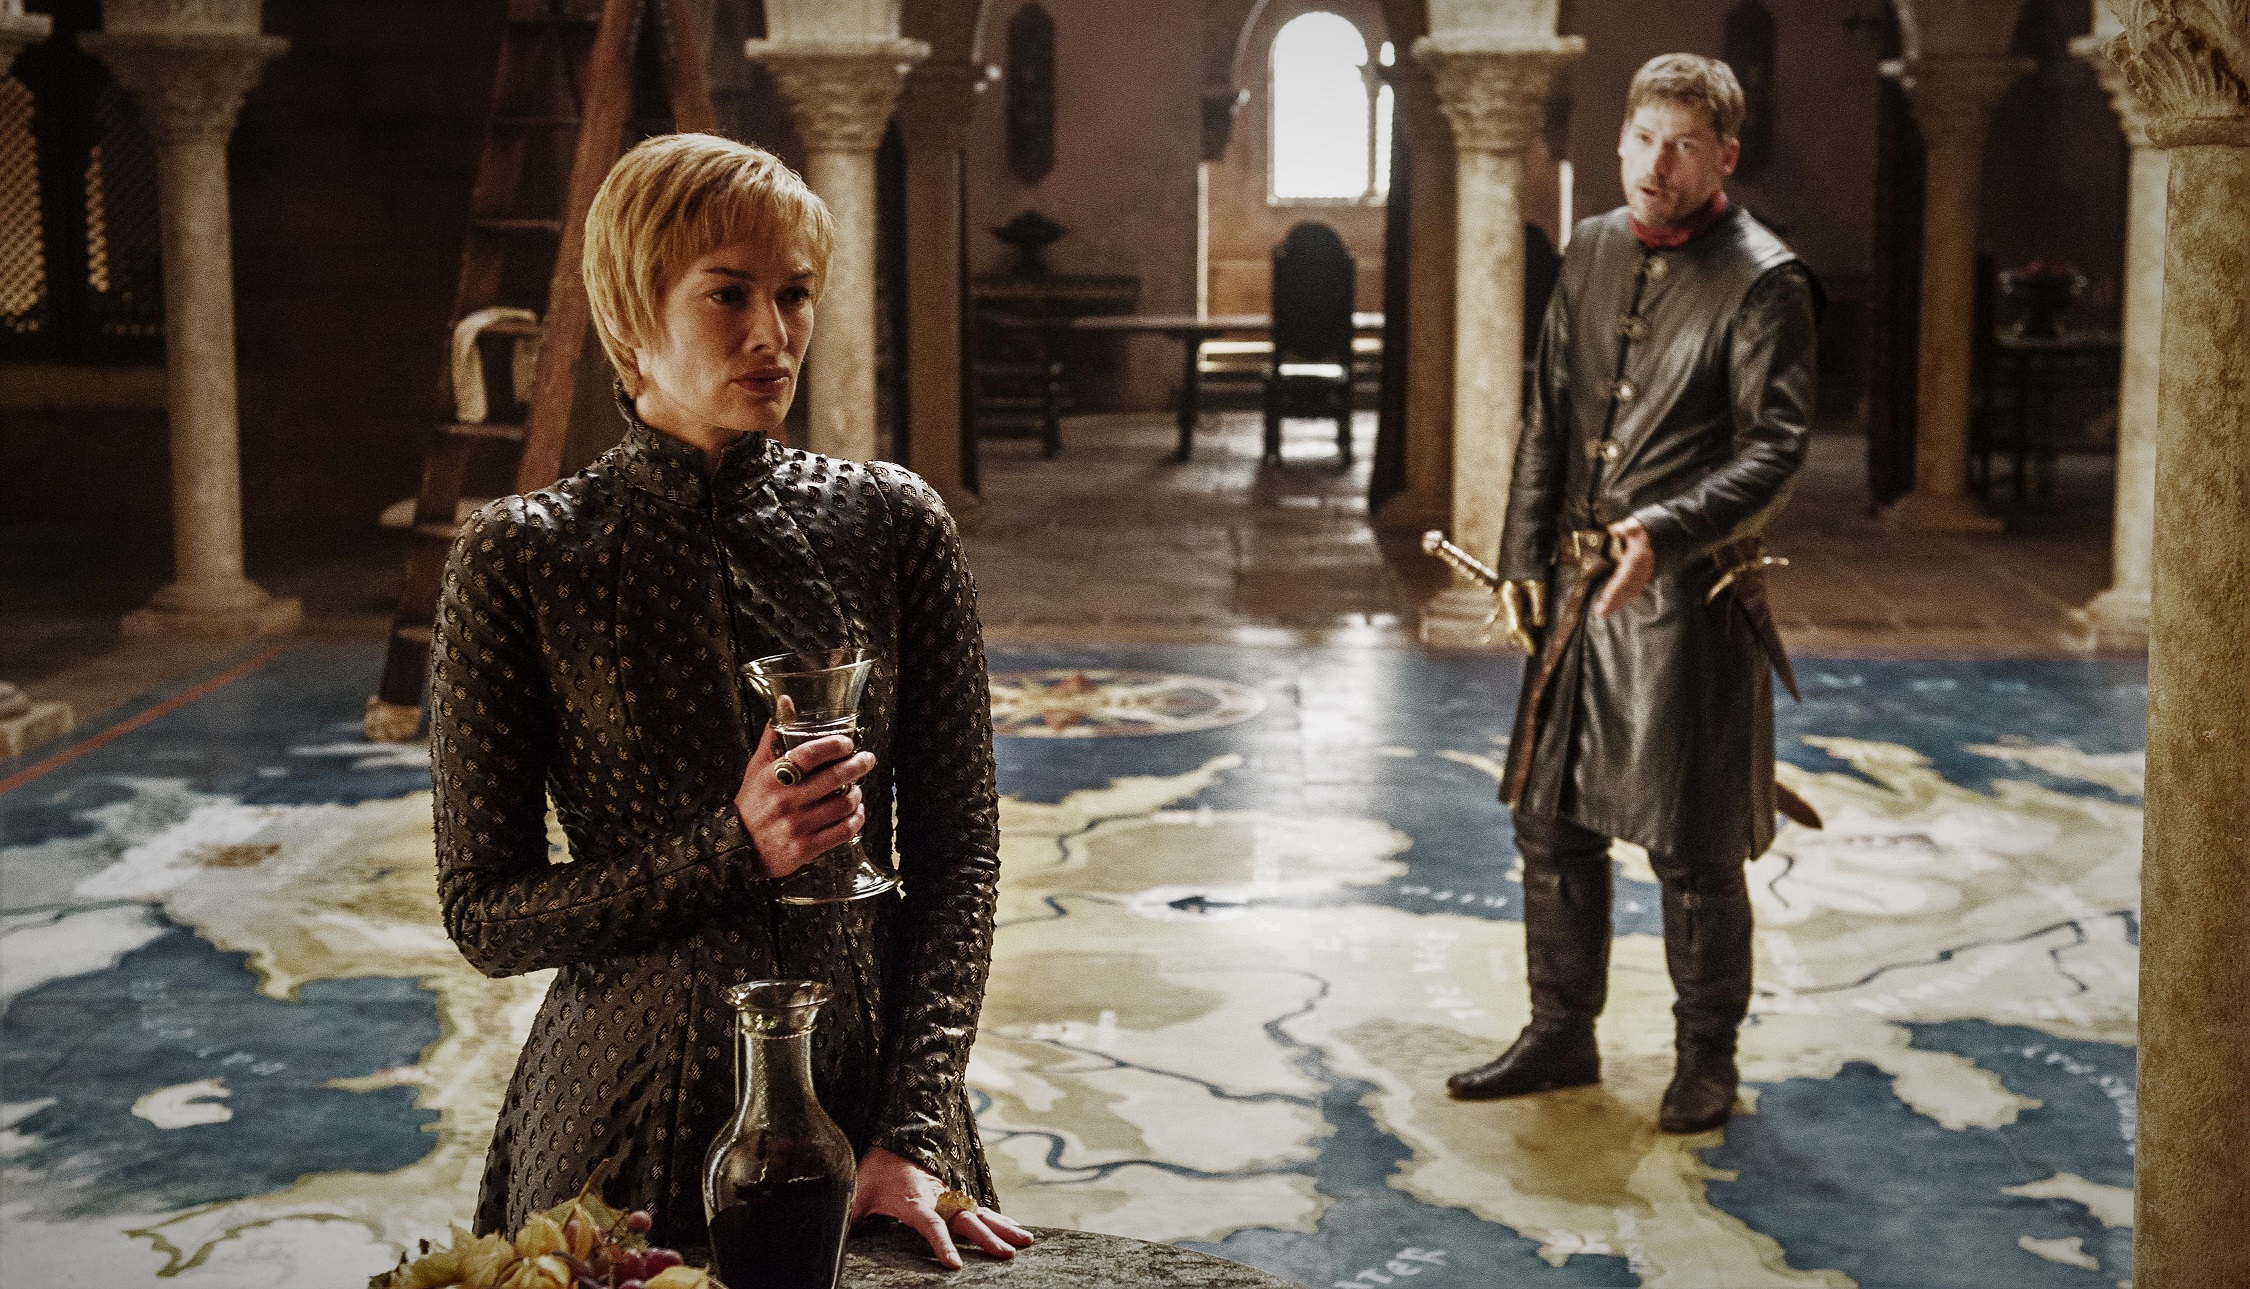 cersei and jaime relationship